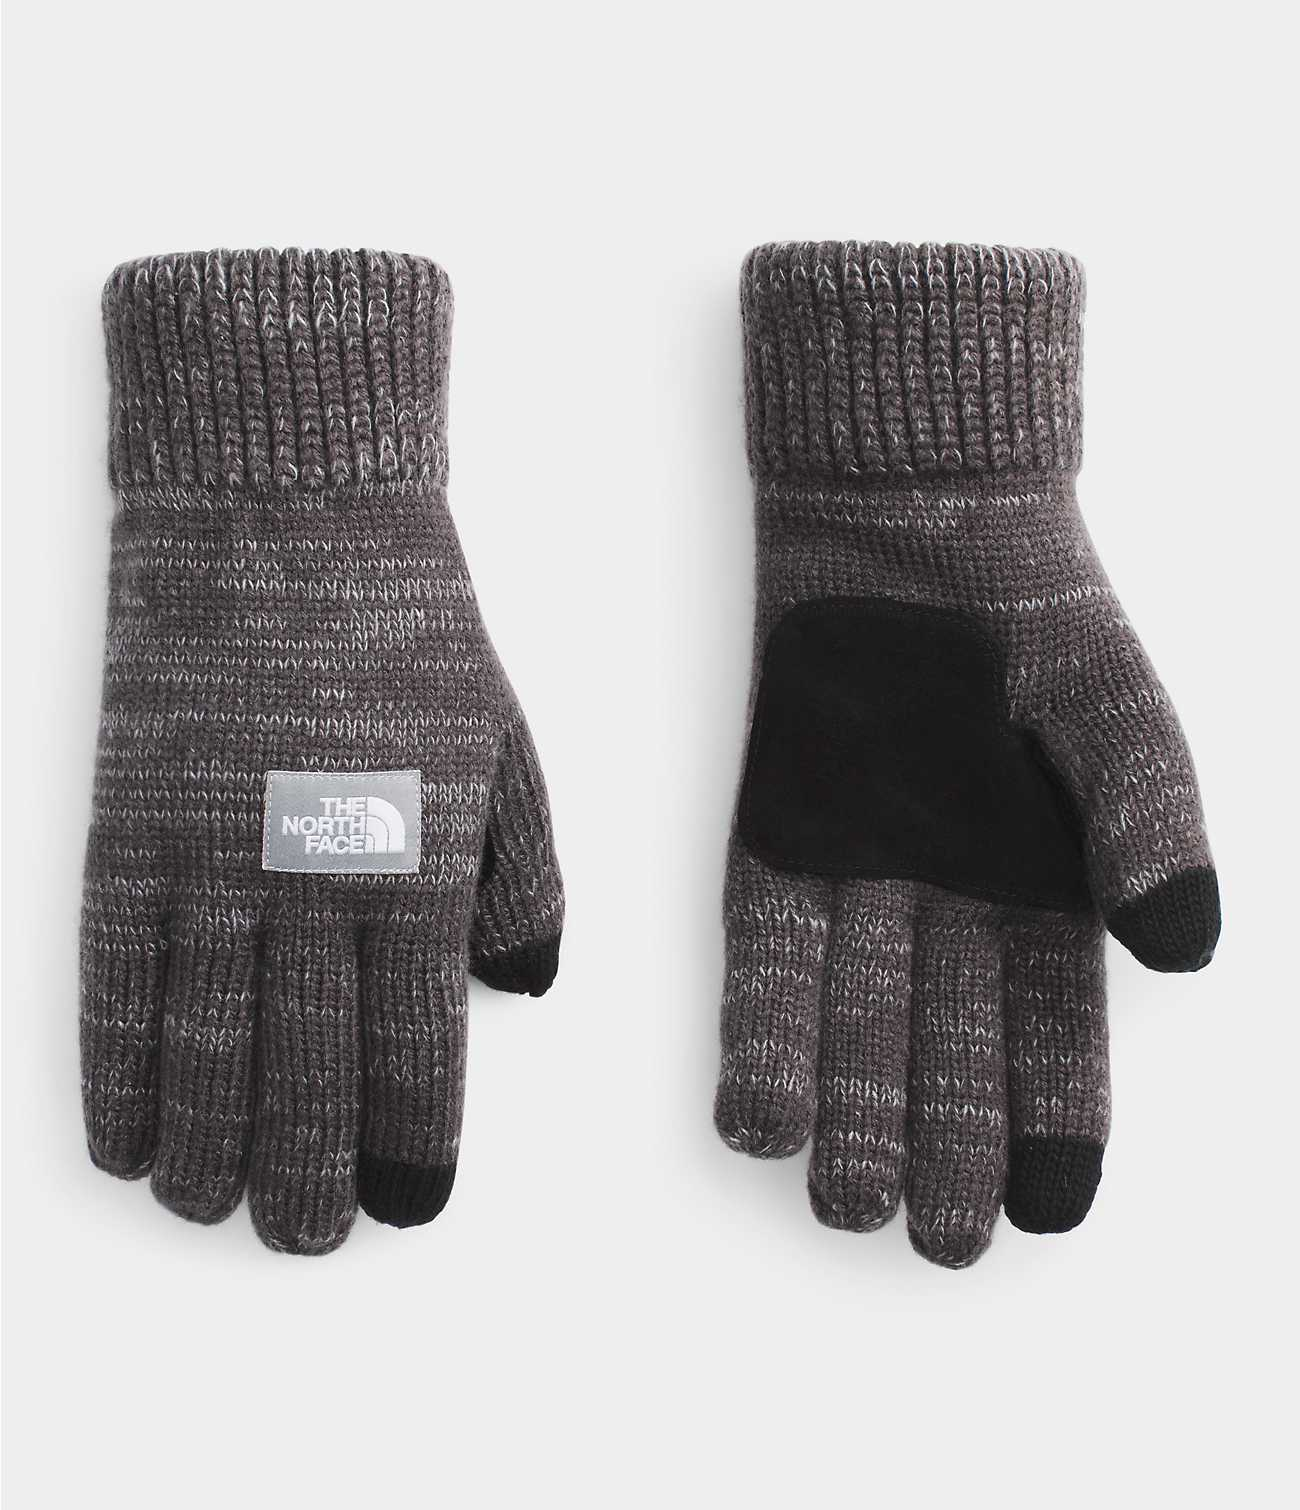 THE NORTH FACE M'S GLOVES SALTY DOG ETIP GLOVES